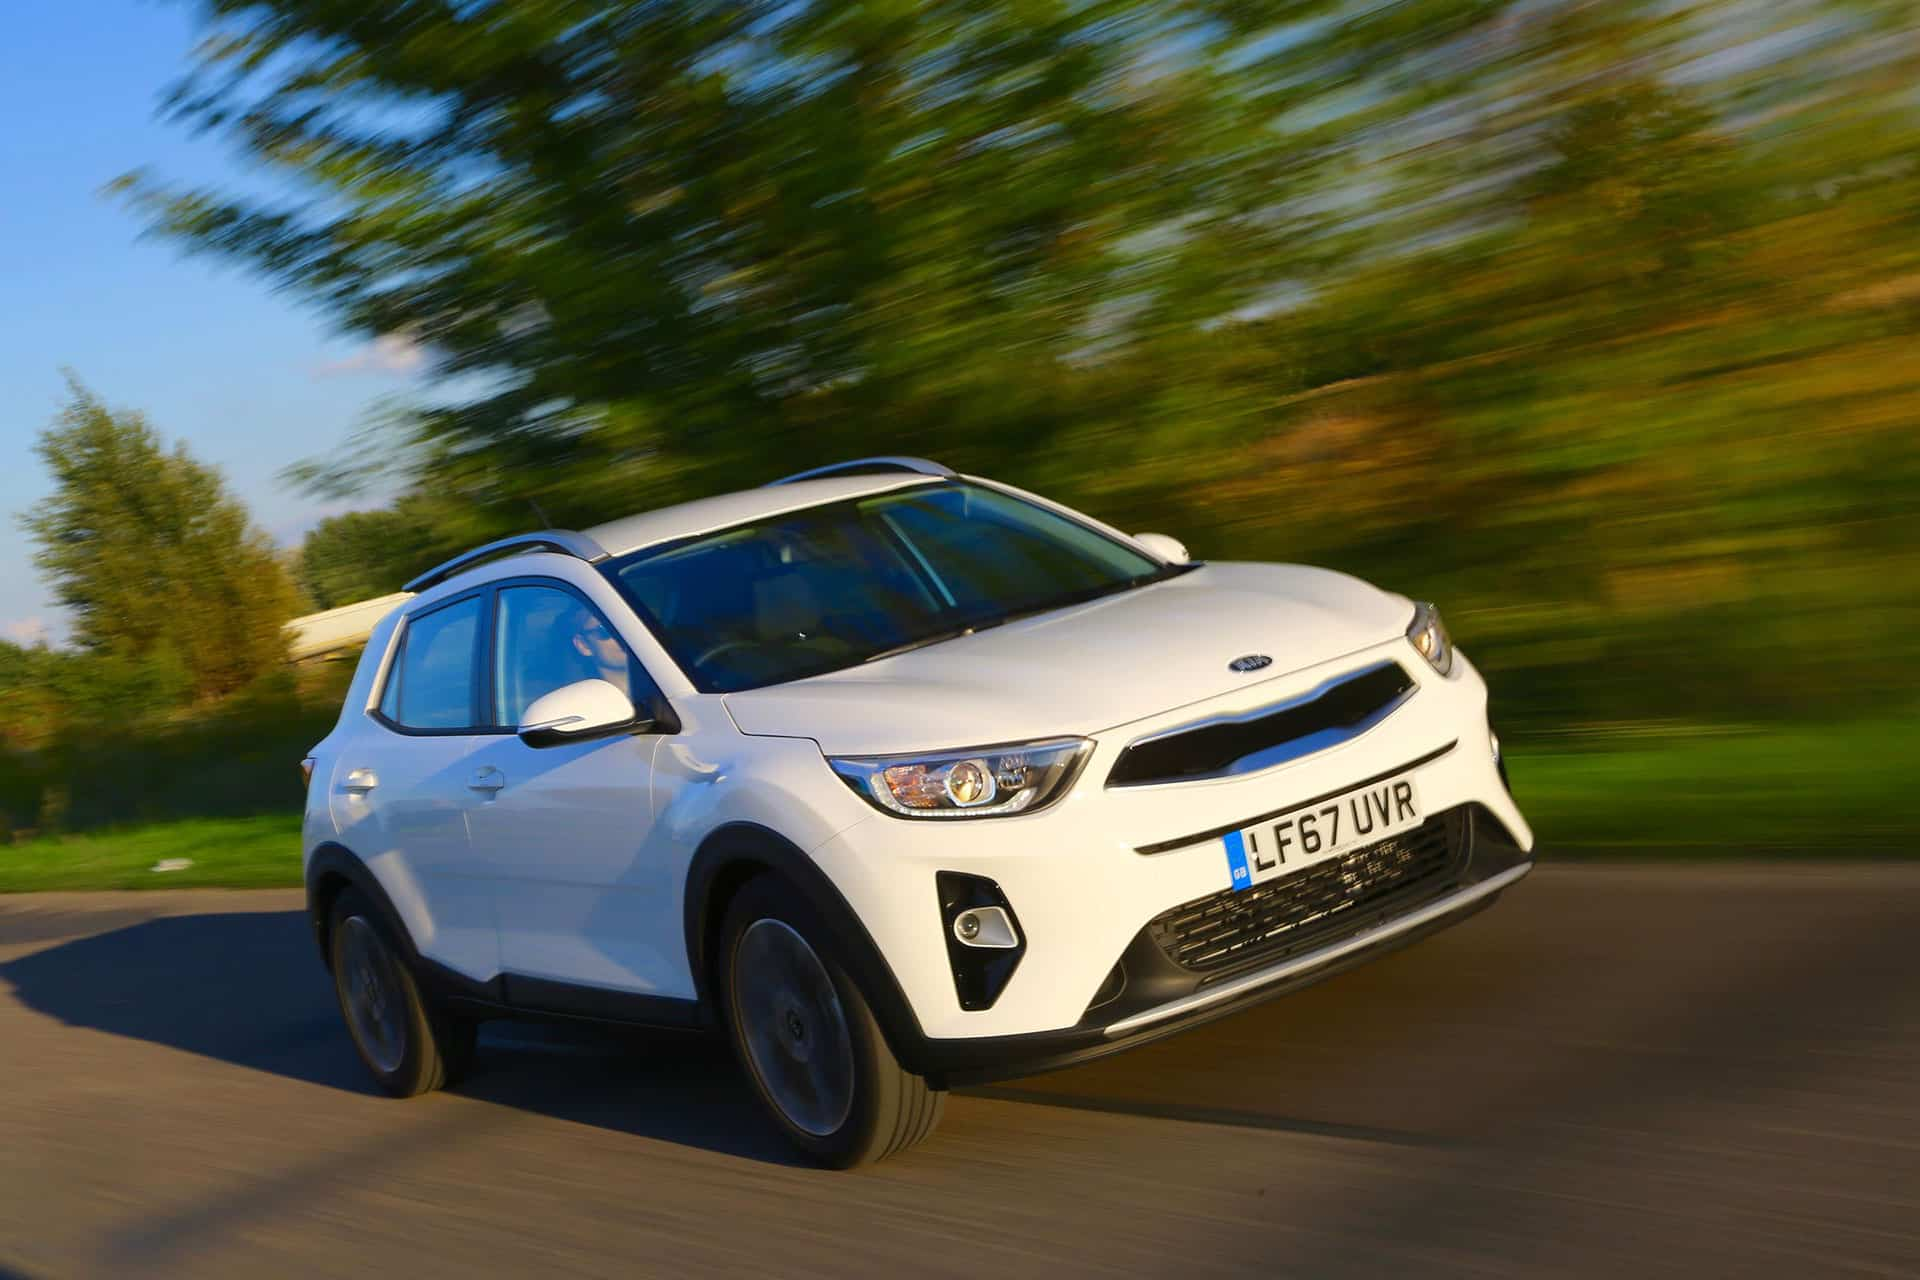 Kia Stonic Crossover prices, specs and details revealed